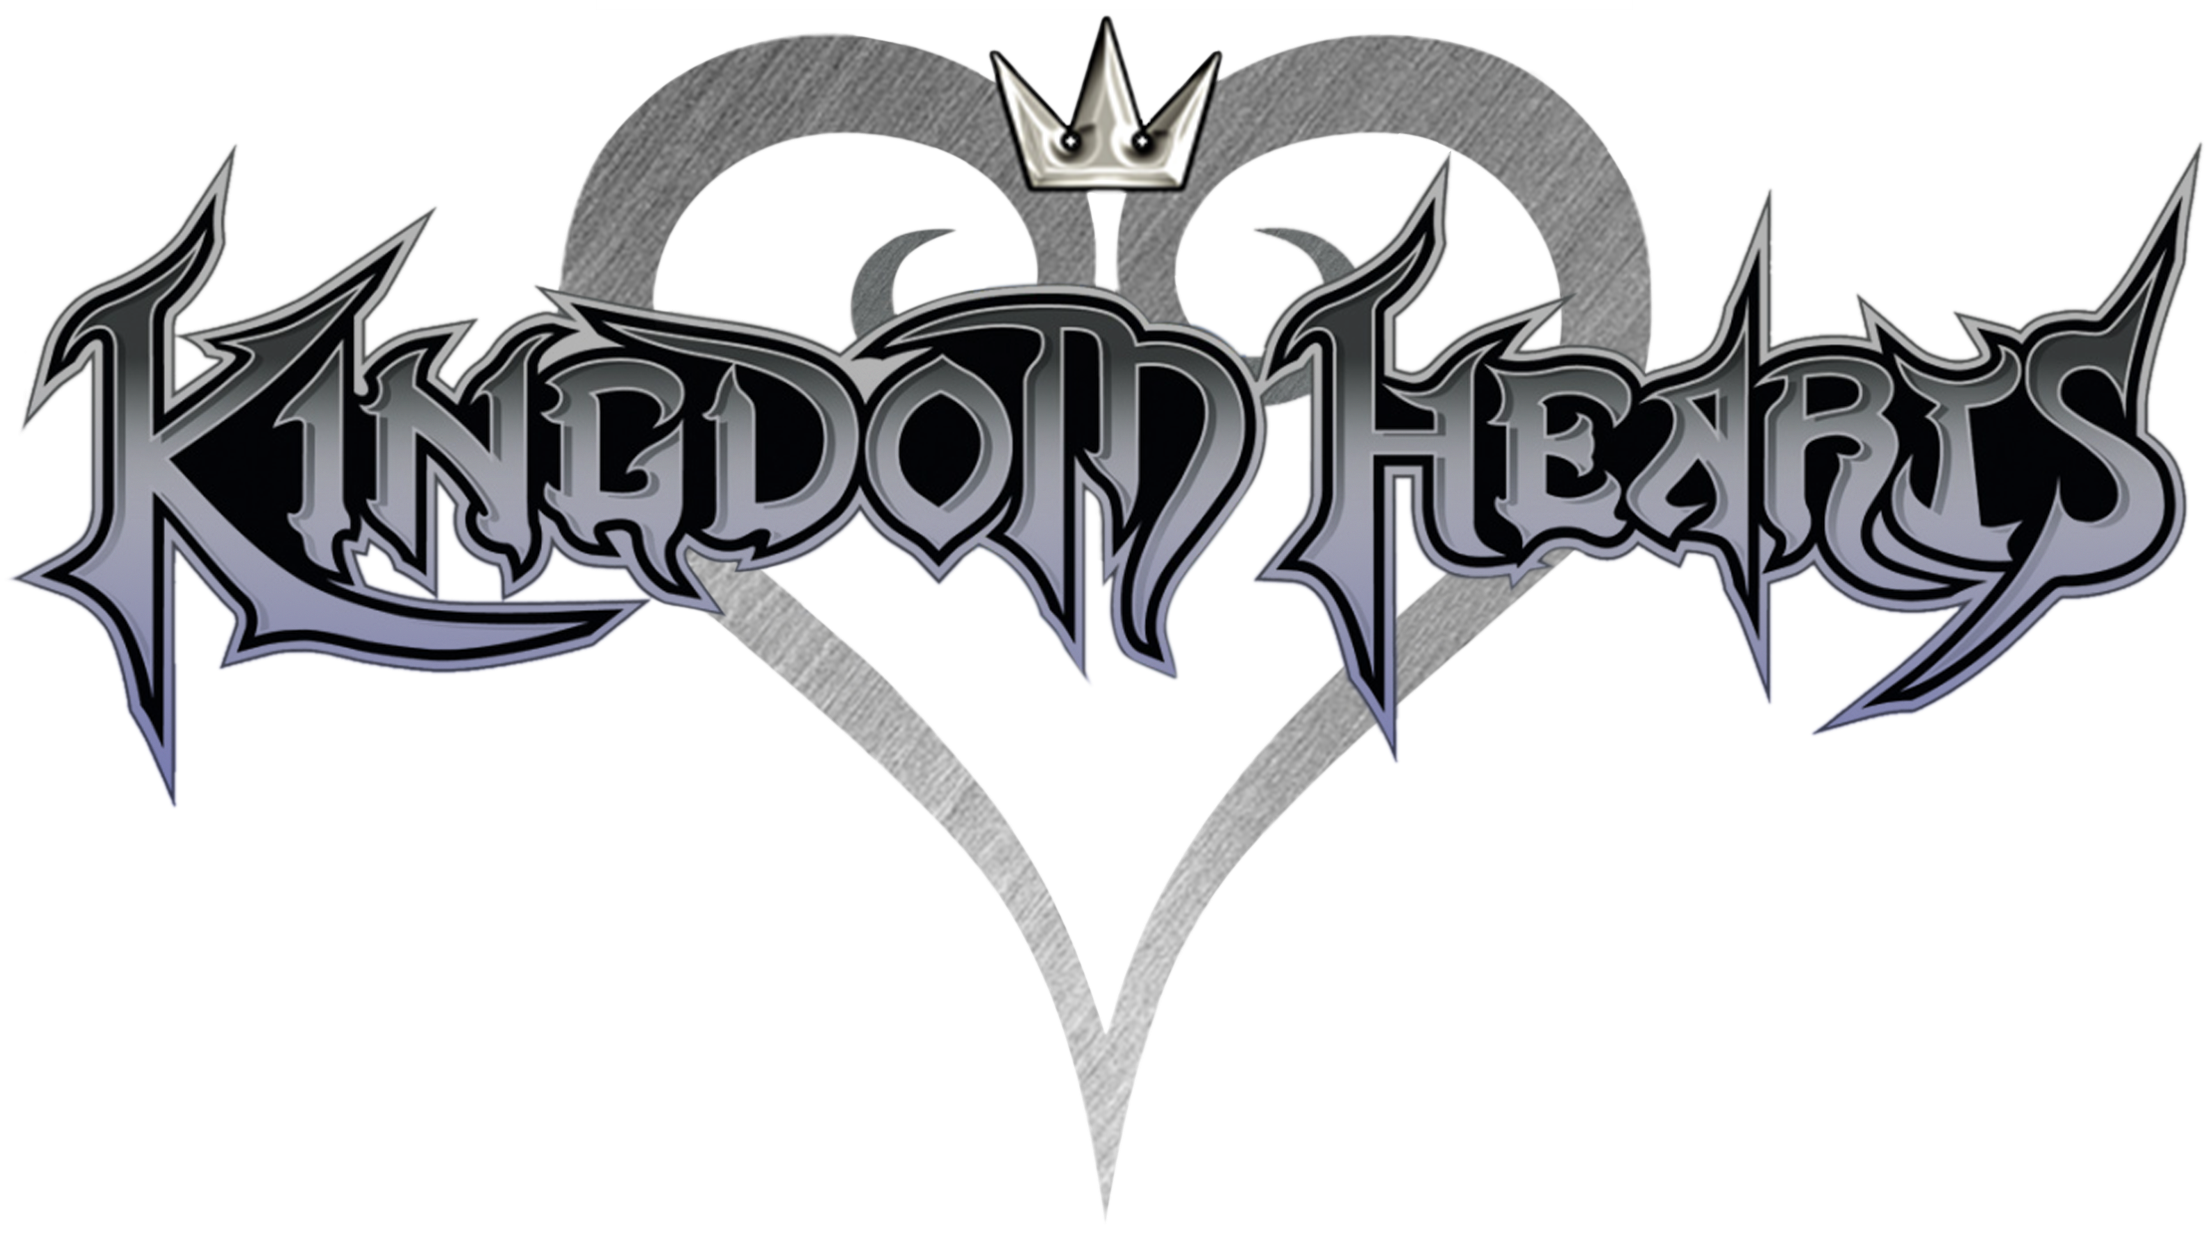 Kingdom Hearts Series Disney Wiki FANDOM Powered By Wikia - Cleaning invoice template free square enix online store